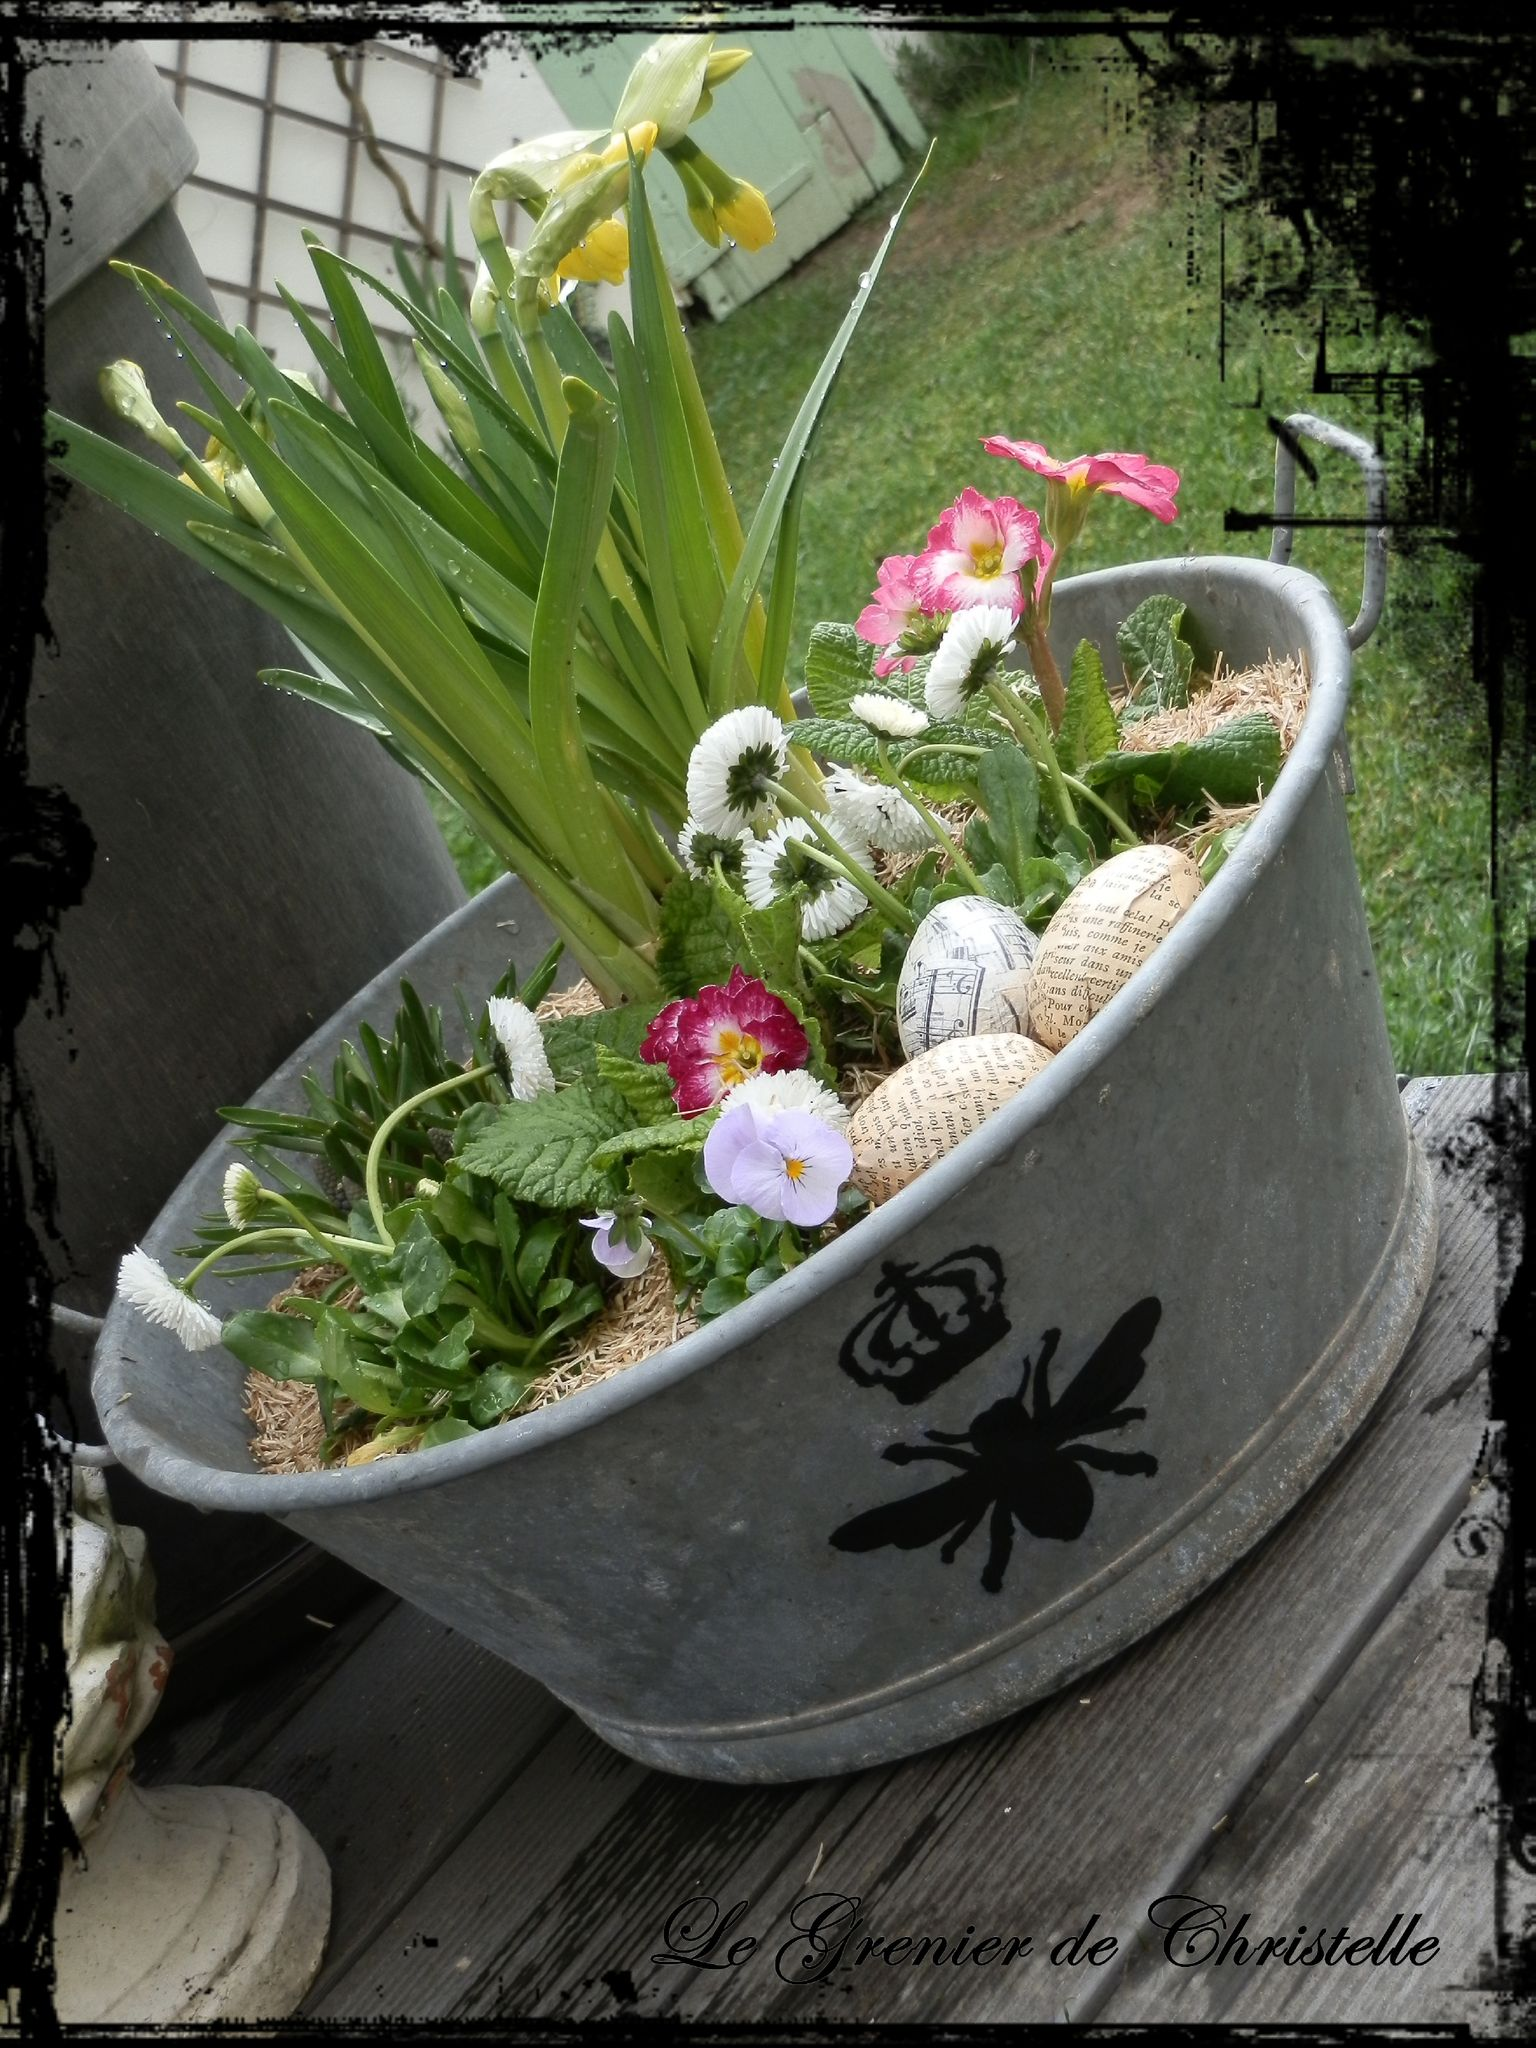 planter fleurs bassine zinc id e d 39 image de fleur. Black Bedroom Furniture Sets. Home Design Ideas